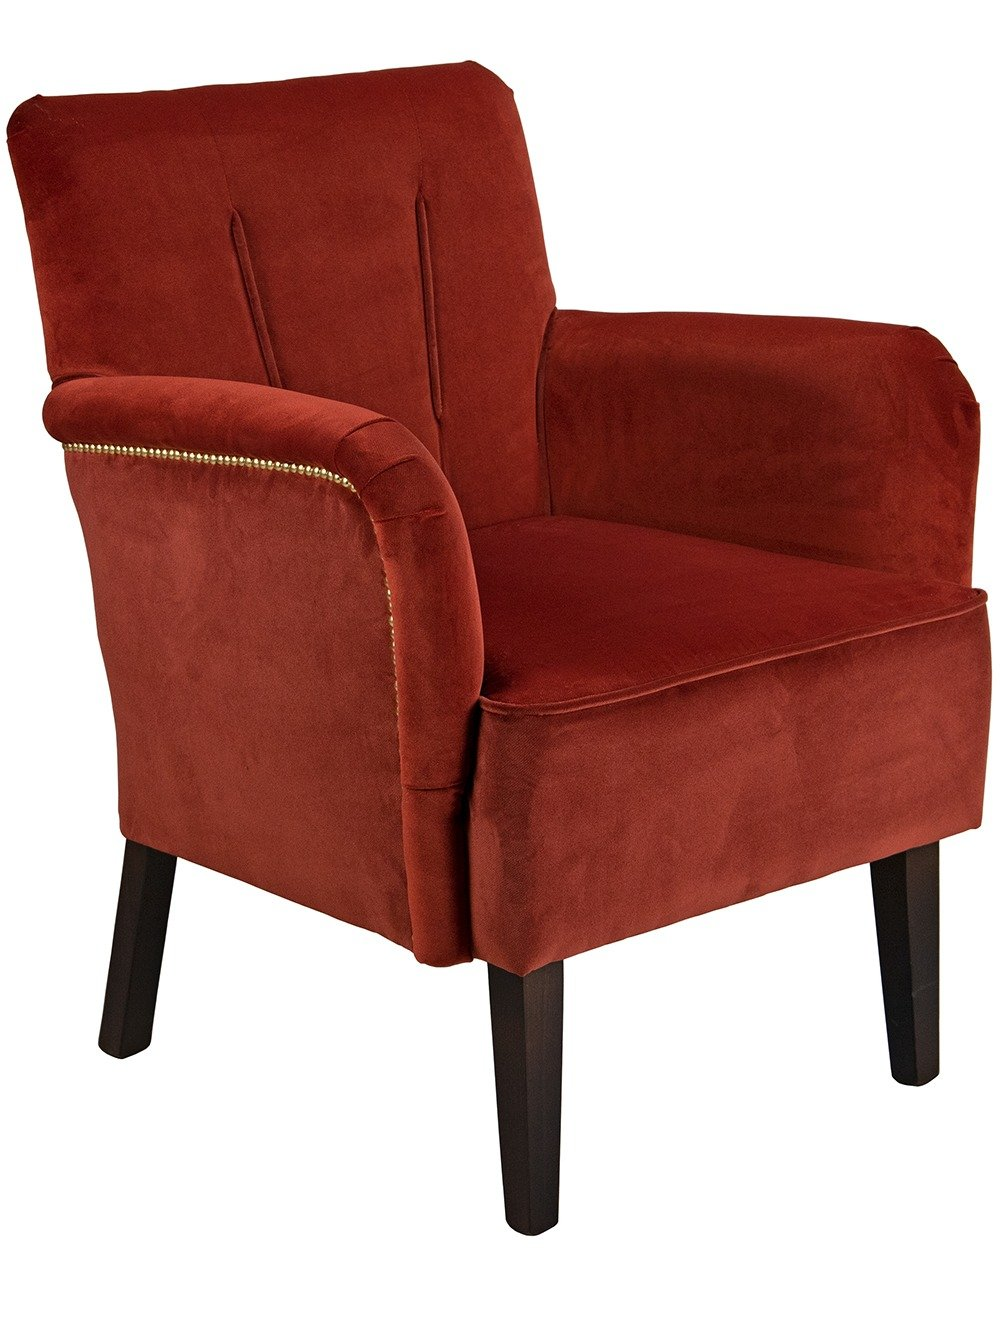 Connie Lounge Chair from a 45 degree angle